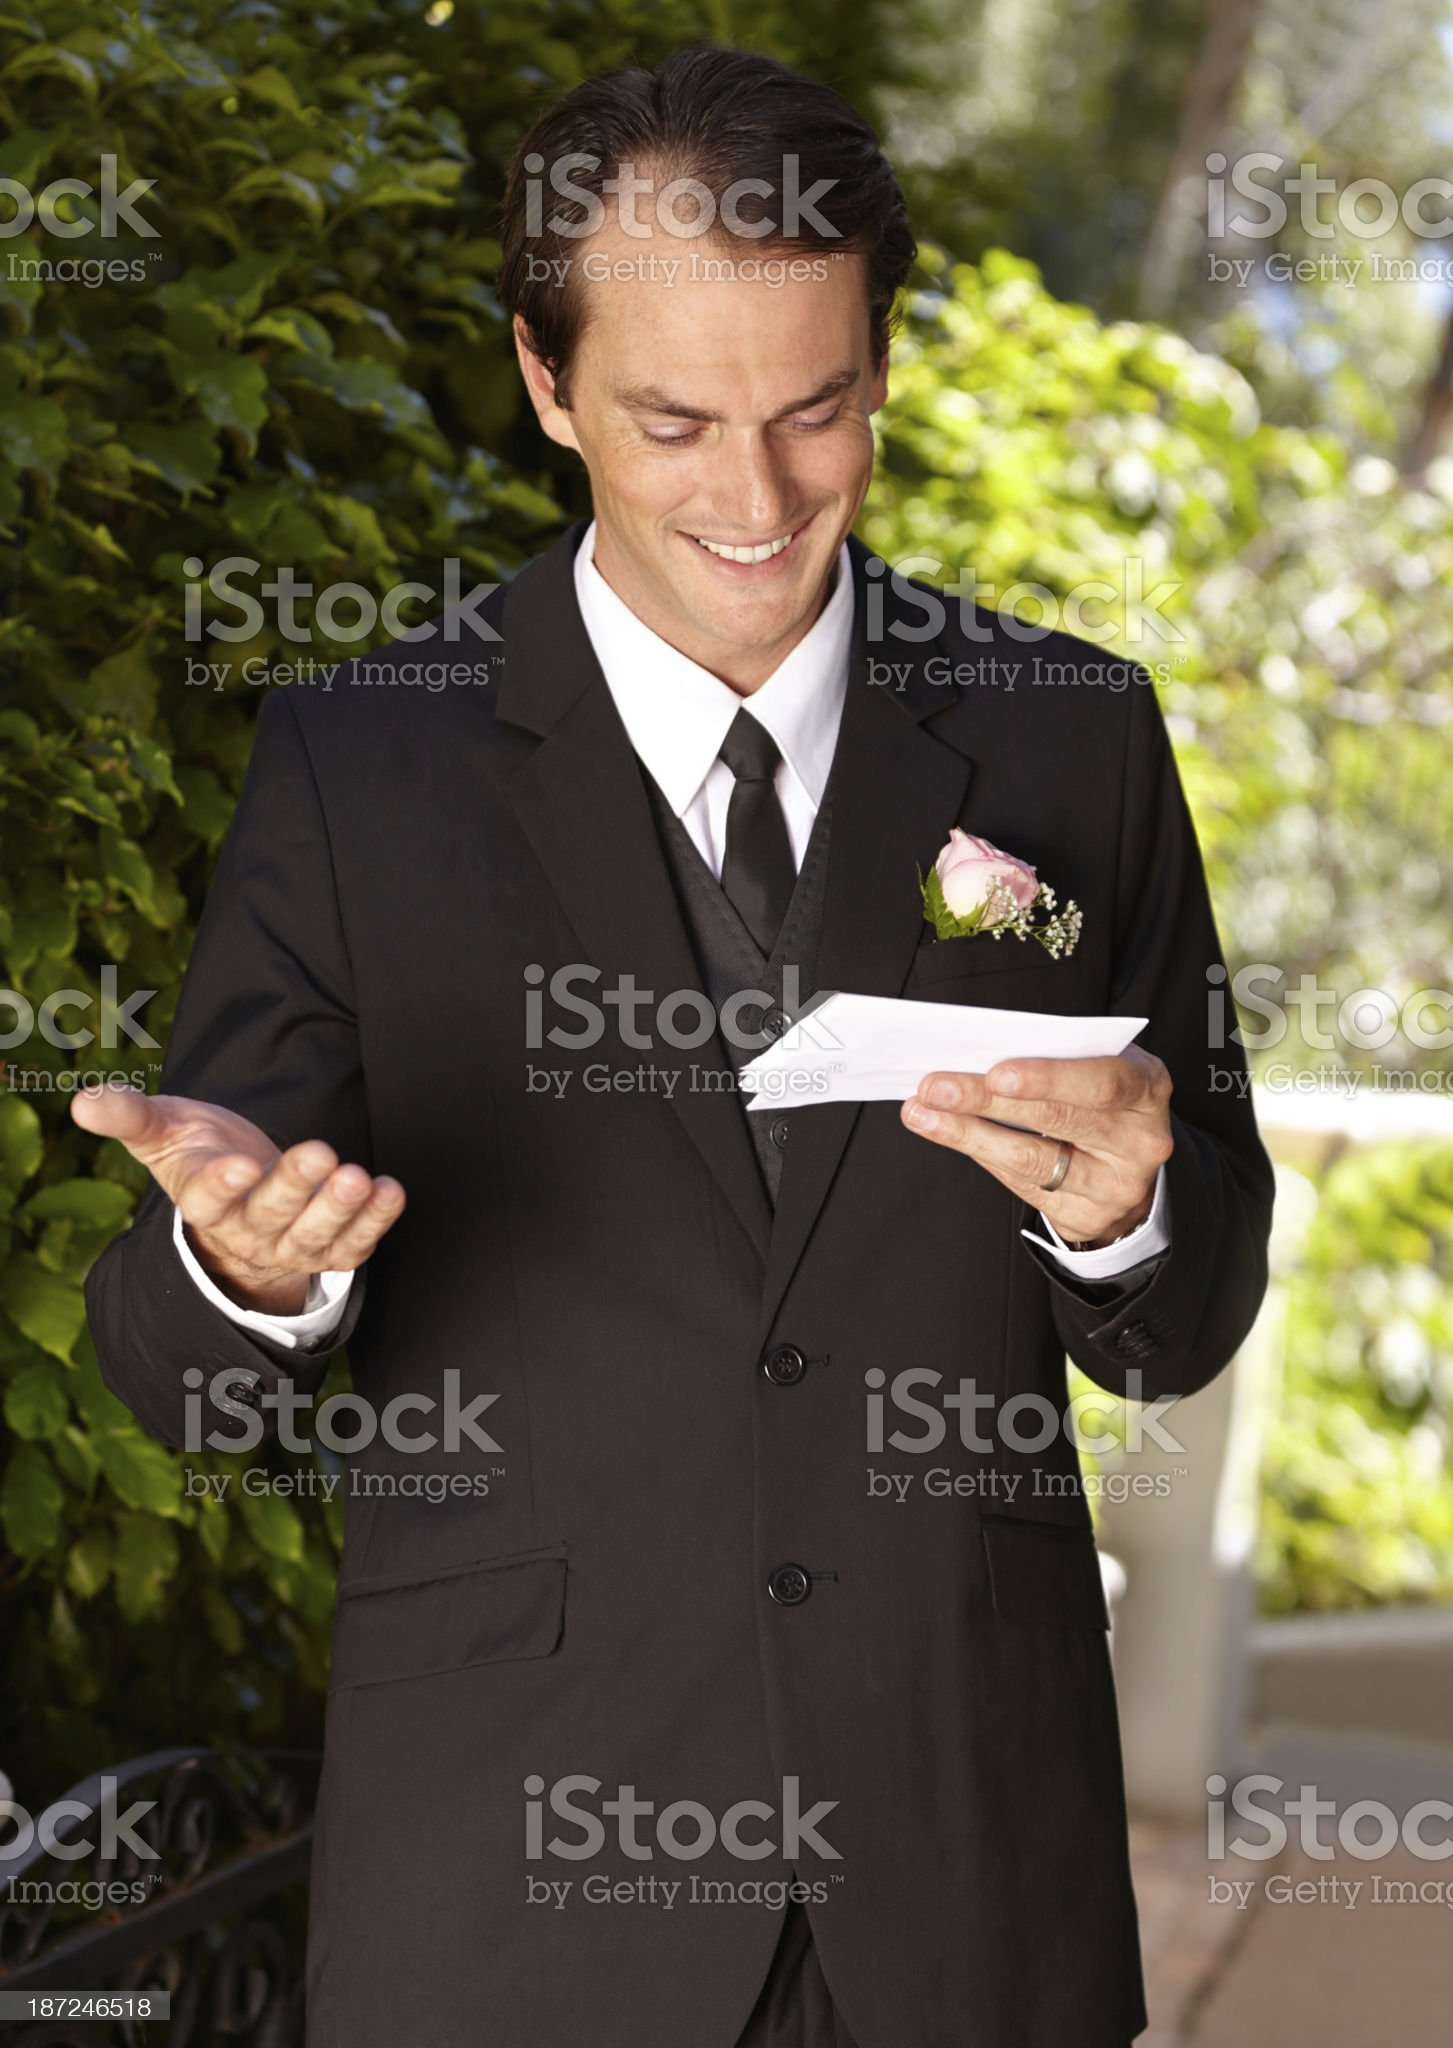 Preparing for his wedding vows royalty-free stock photo